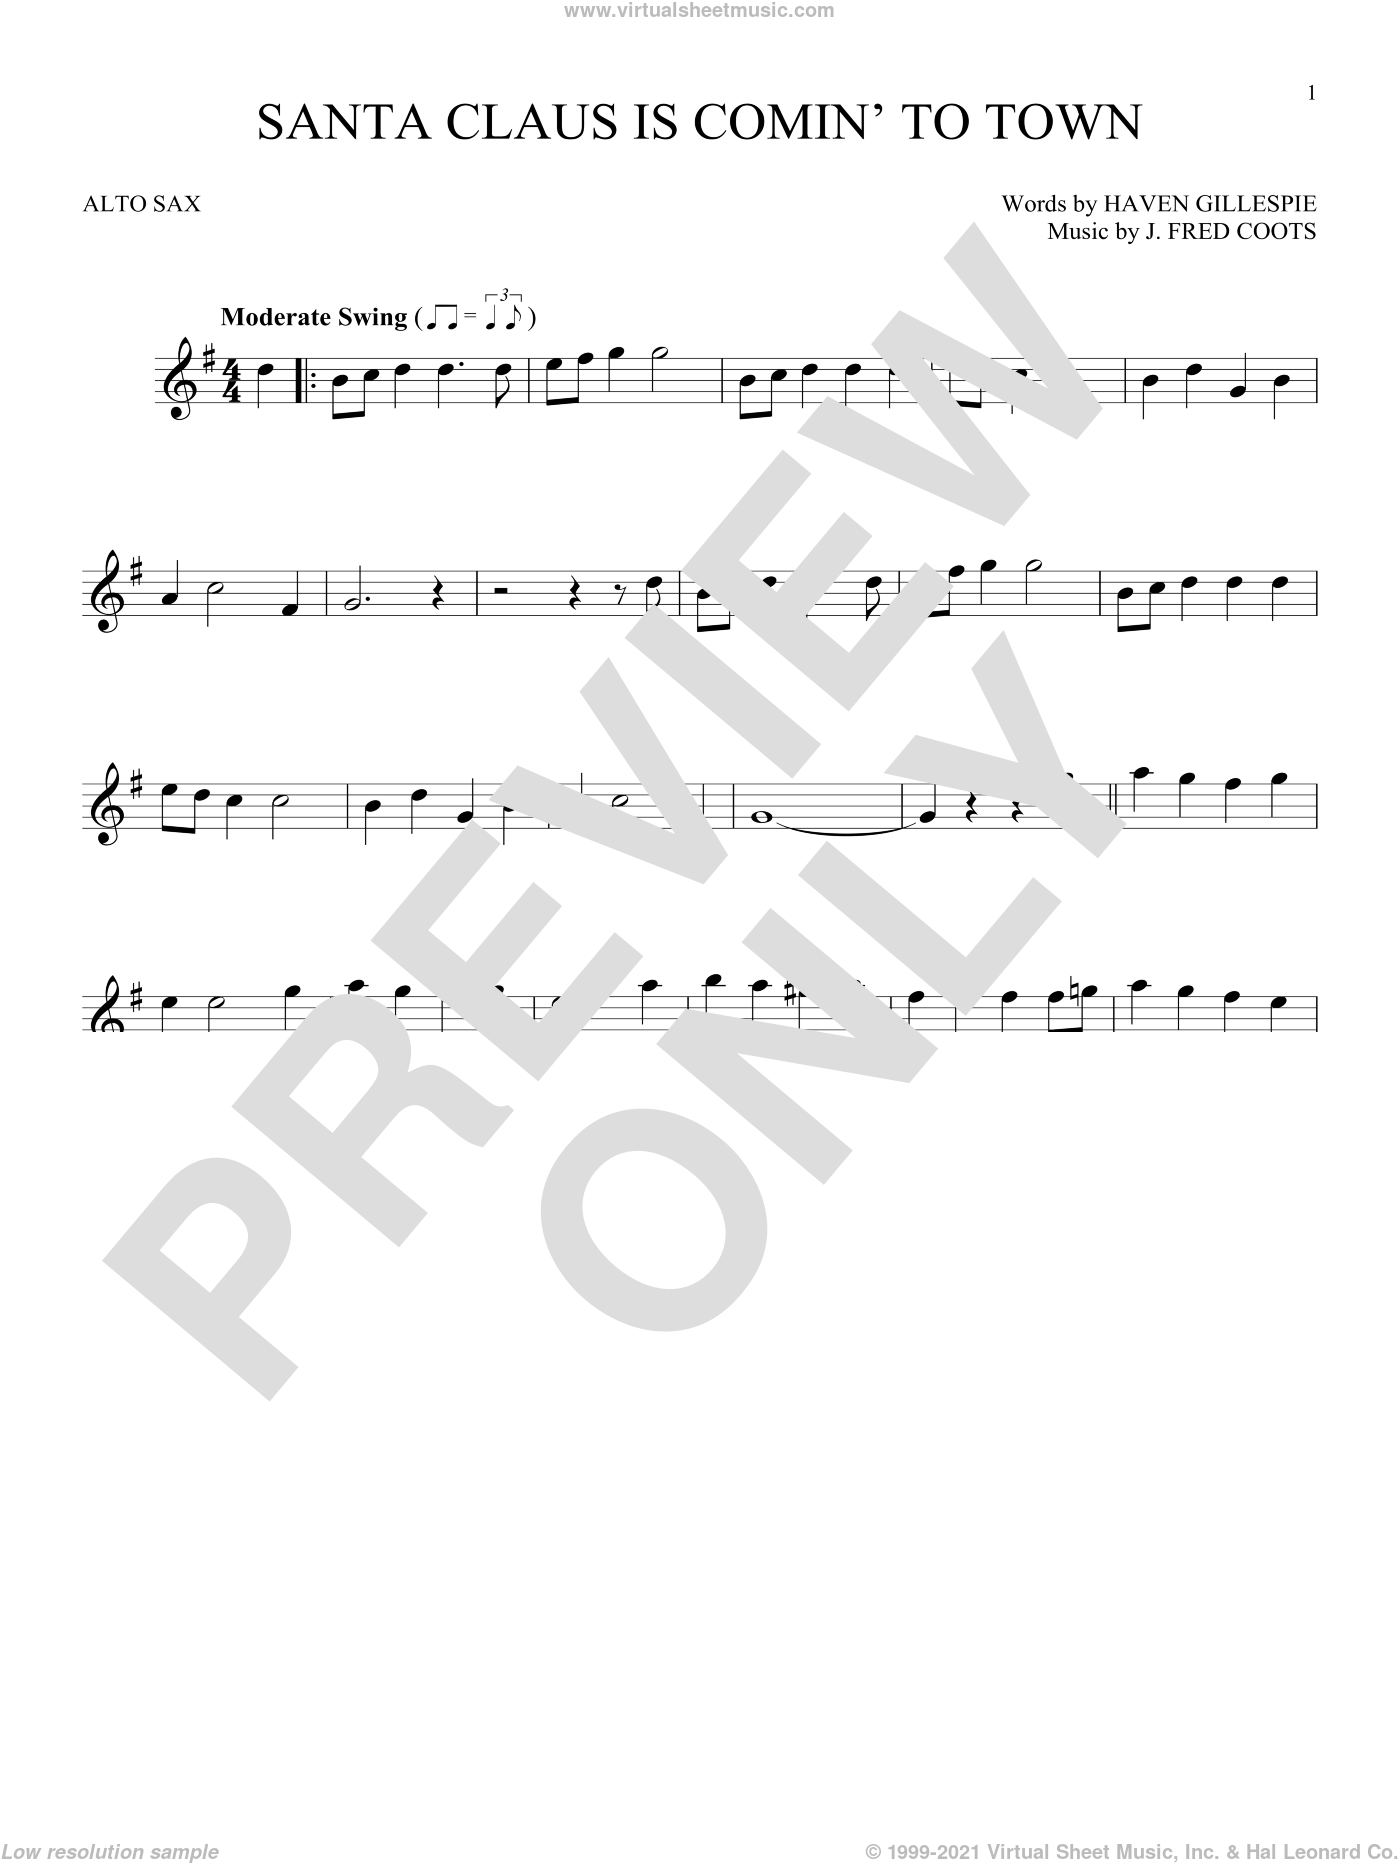 Santa Claus Is Comin' To Town sheet music for alto saxophone solo by J. Fred Coots and Haven Gillespie, intermediate